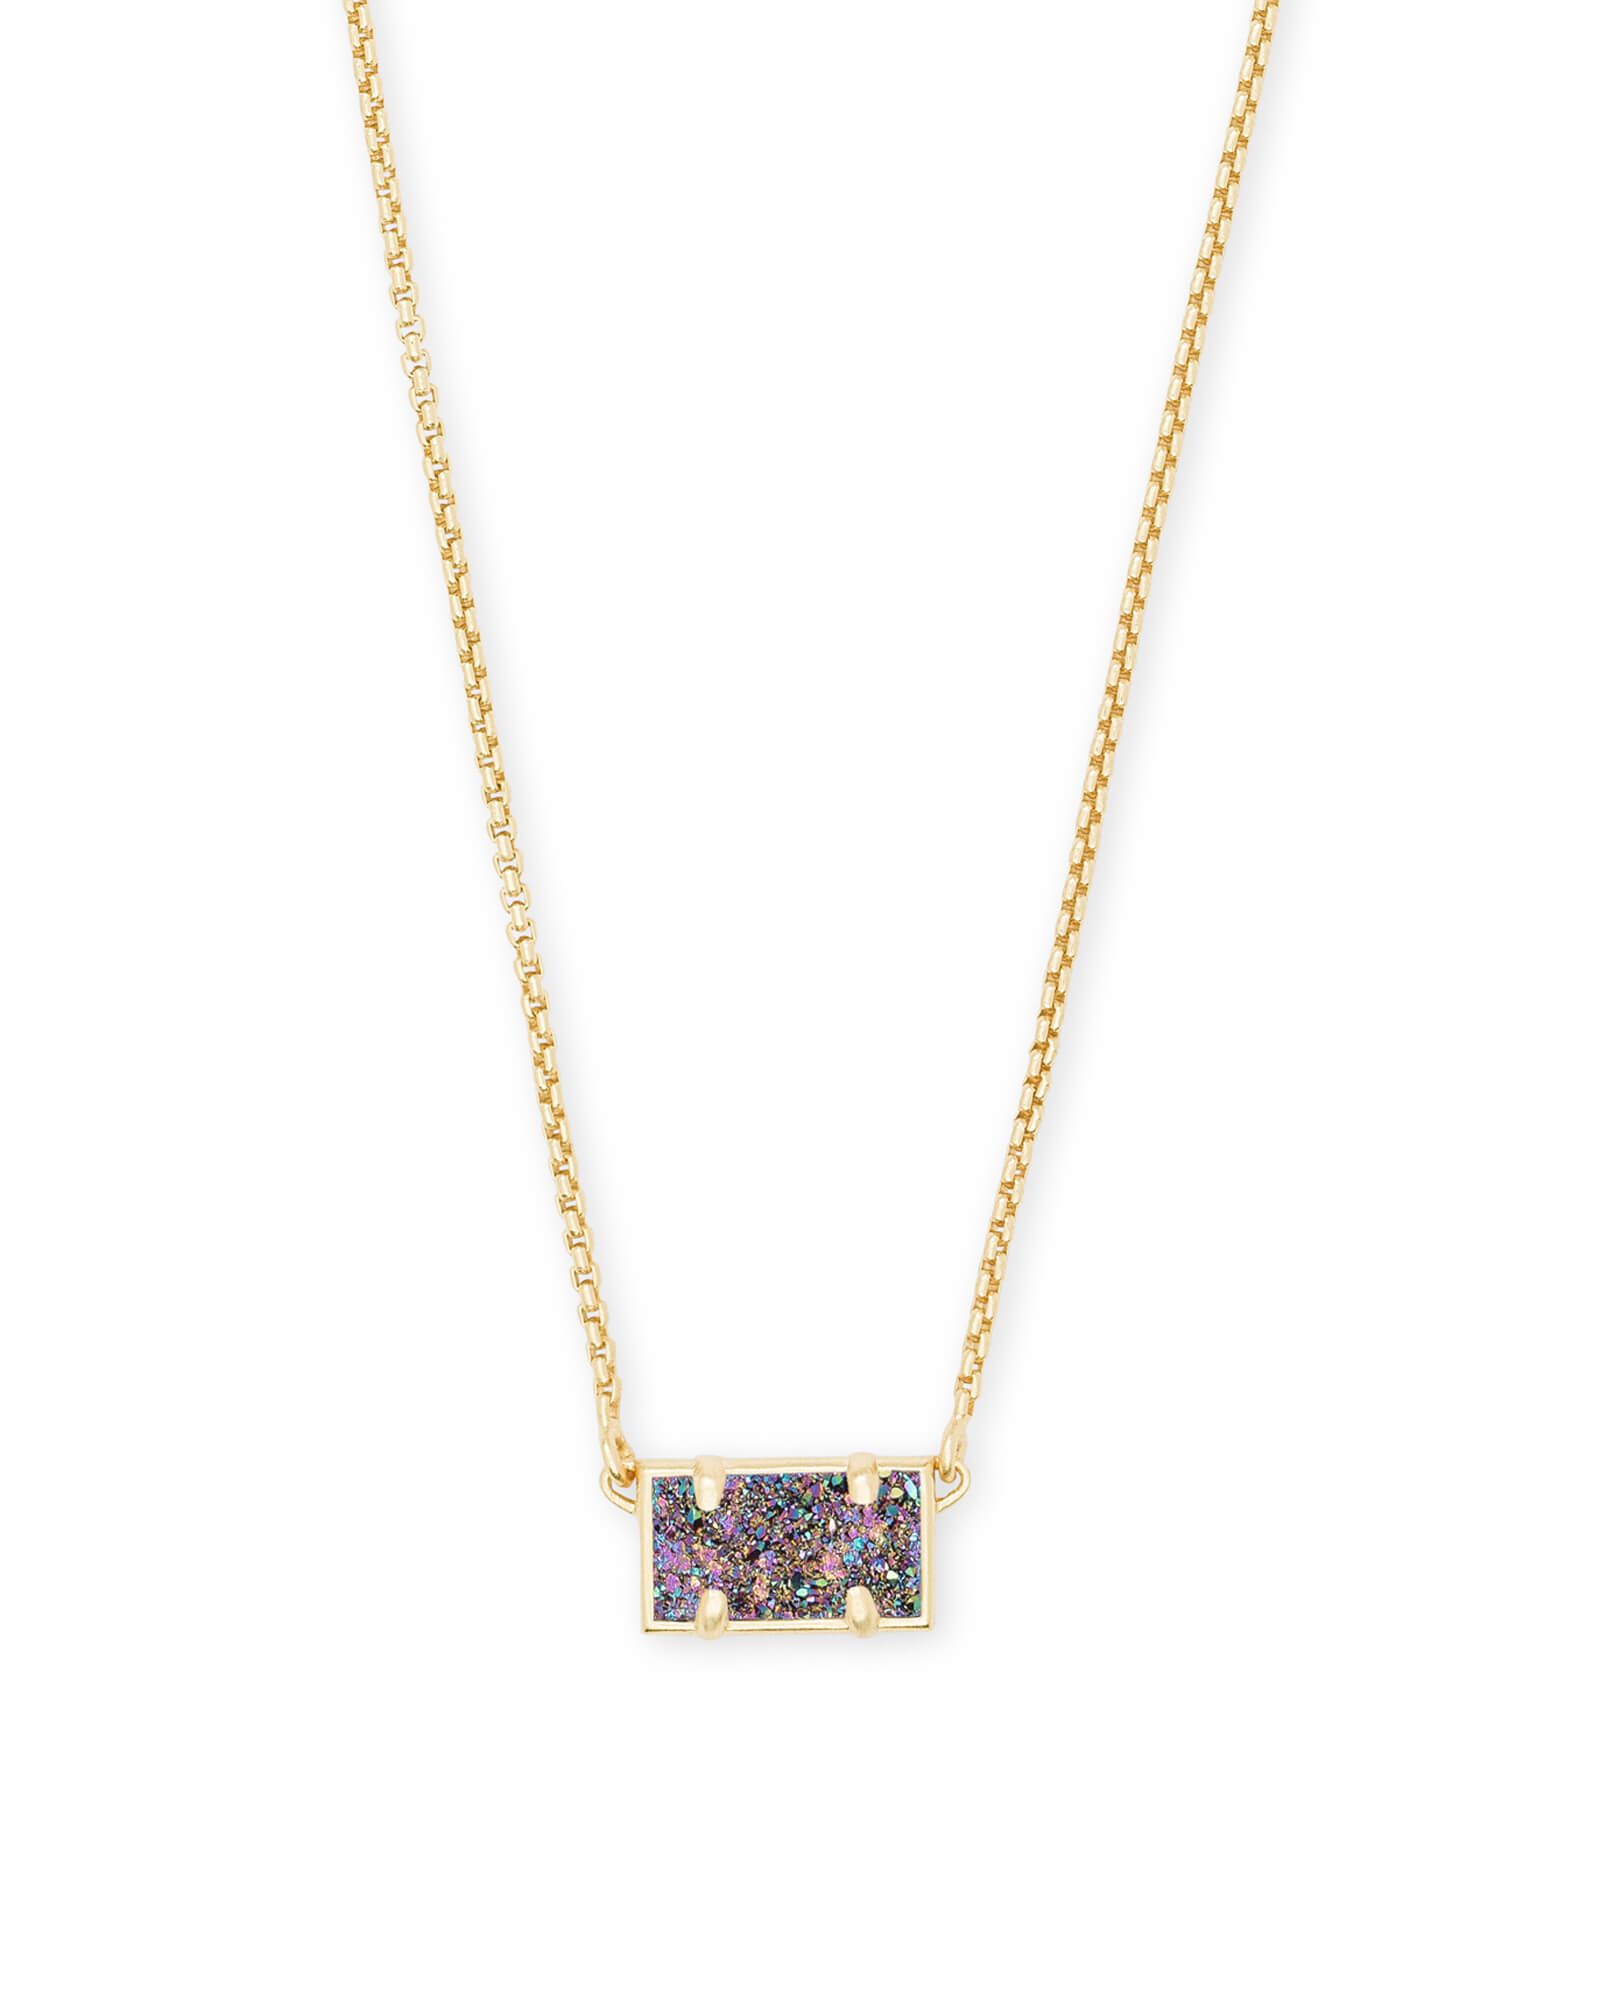 Pattie Gold Pendant Necklace In Multicolor Drusy